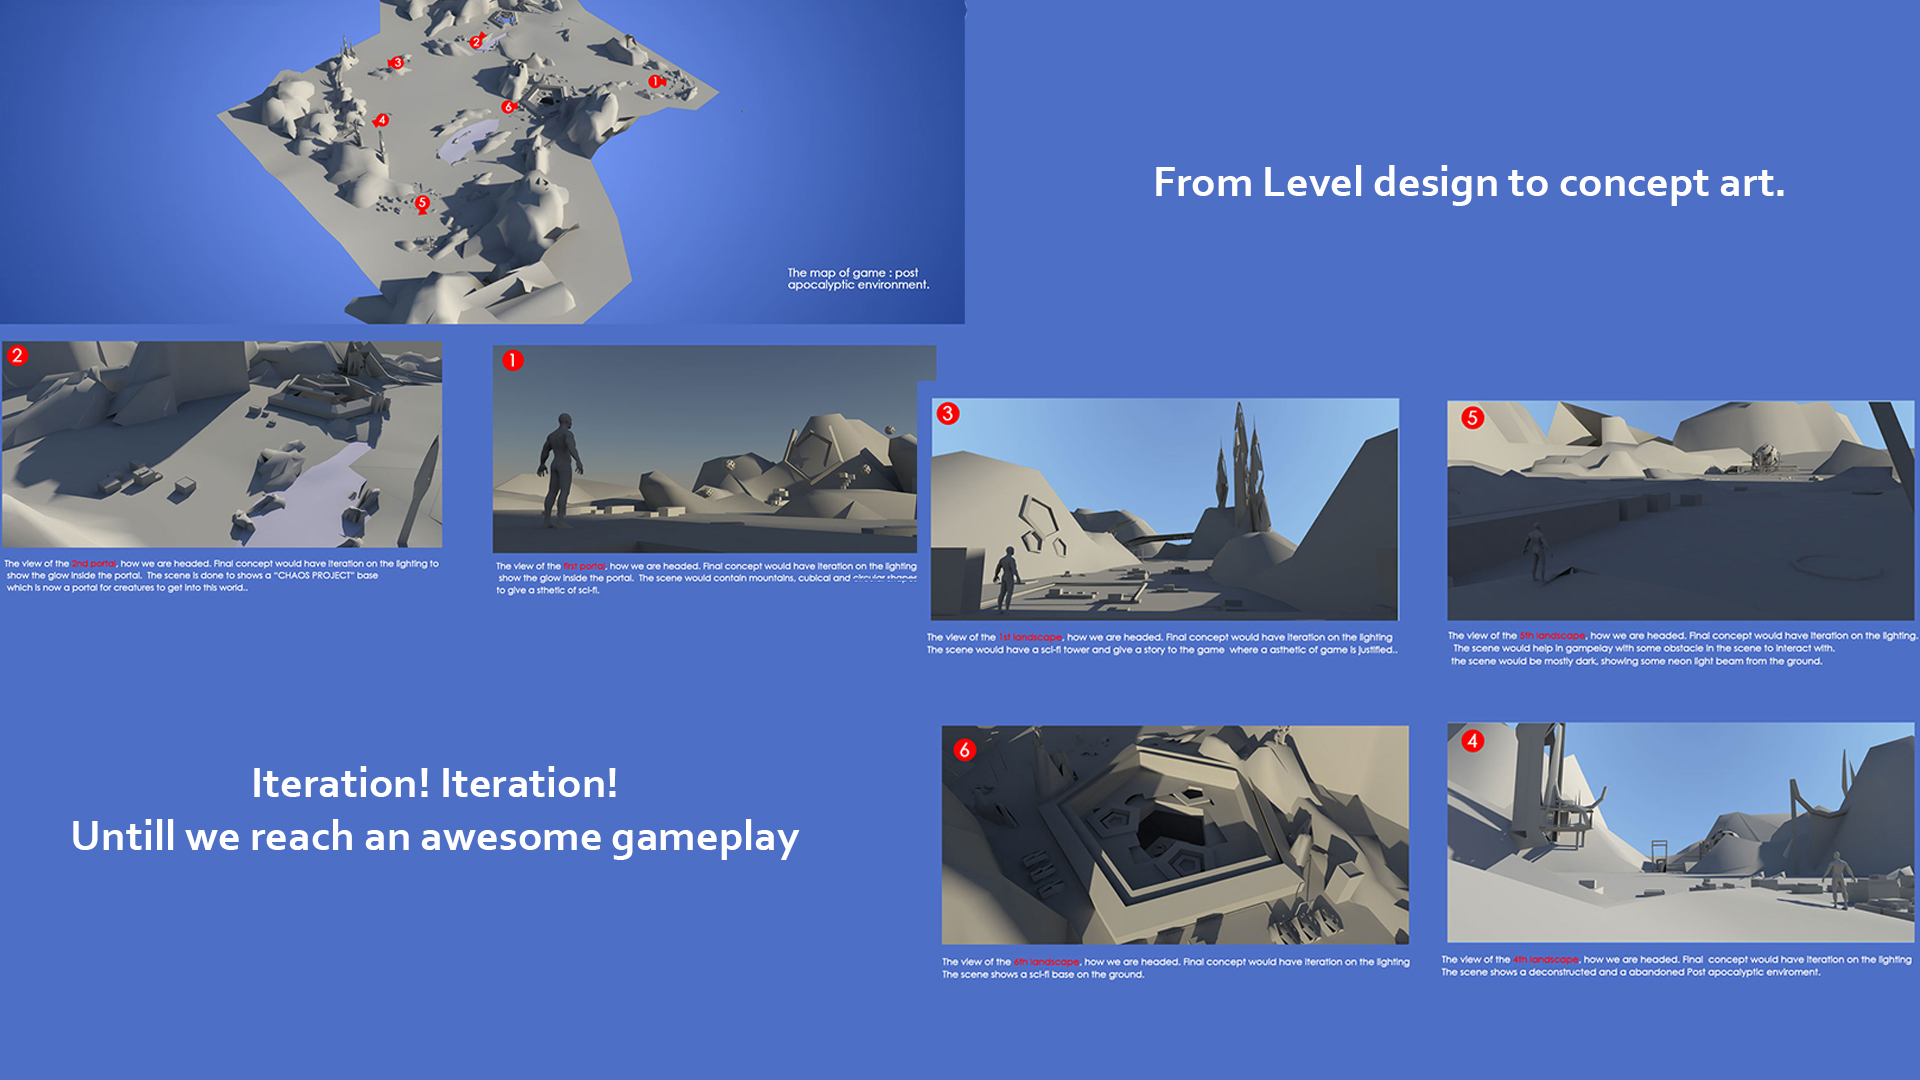 From Game design to concept to gameplay!